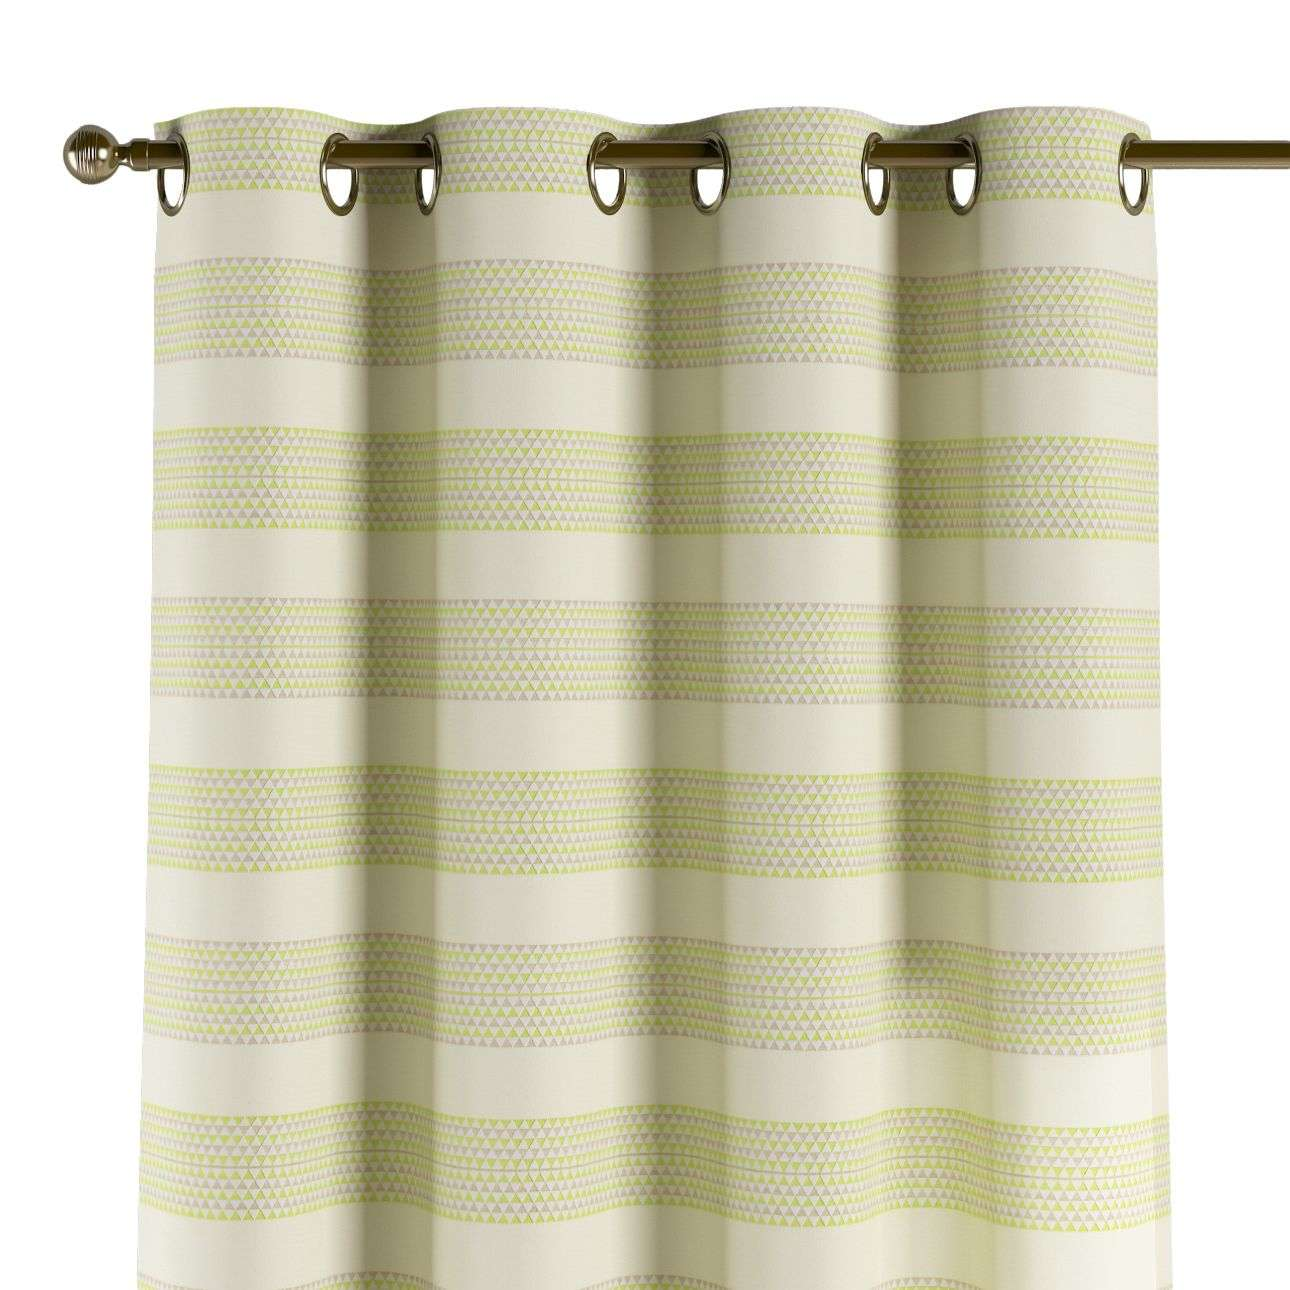 Eyelet curtains in collection SALE, fabric: 140-35